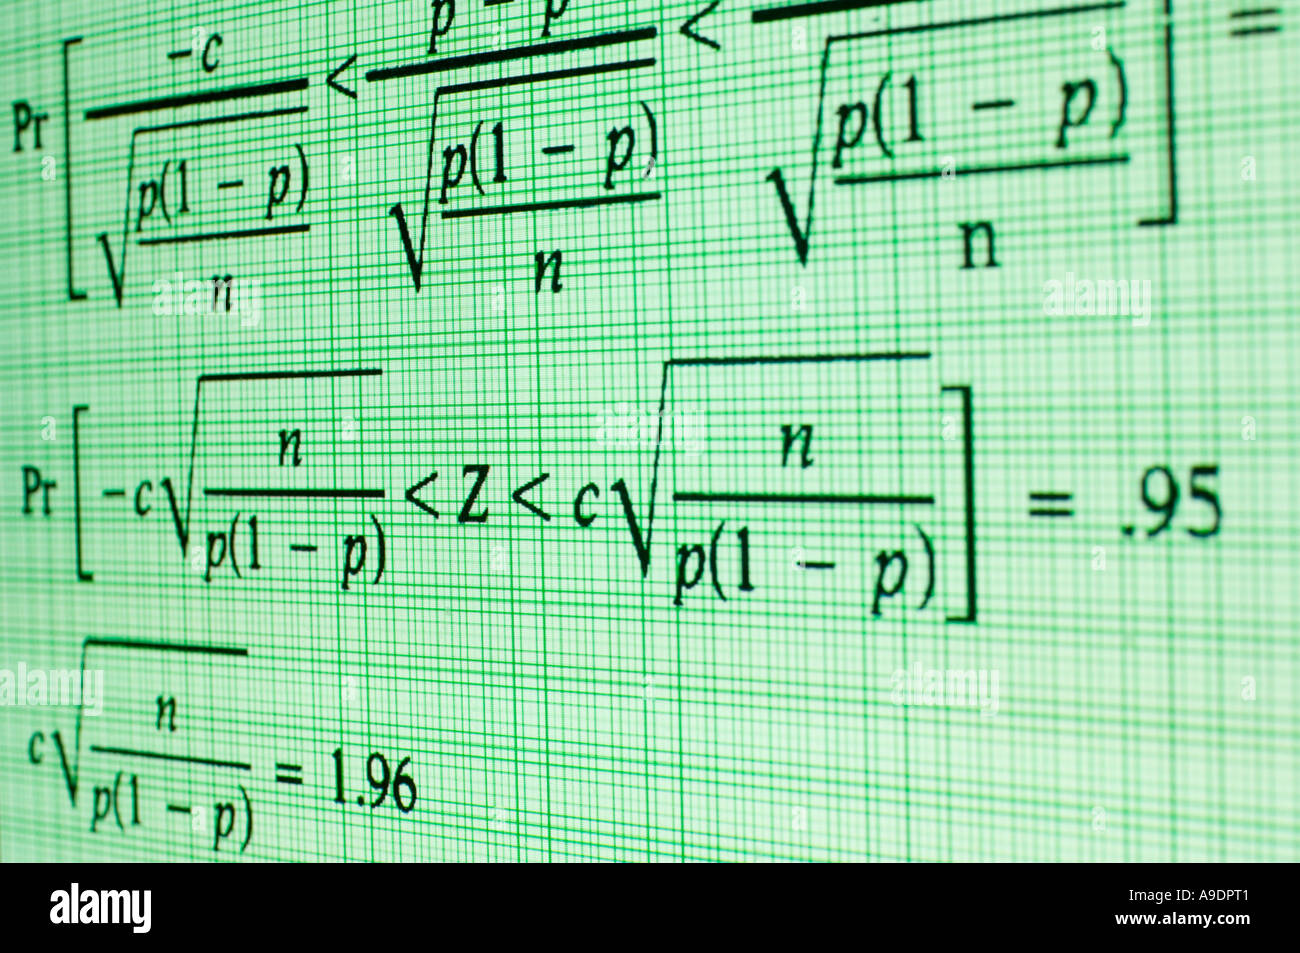 Multiple math symbols on graph paper projected onto computer multiple math symbols on graph paper projected onto computer screen biocorpaavc Choice Image